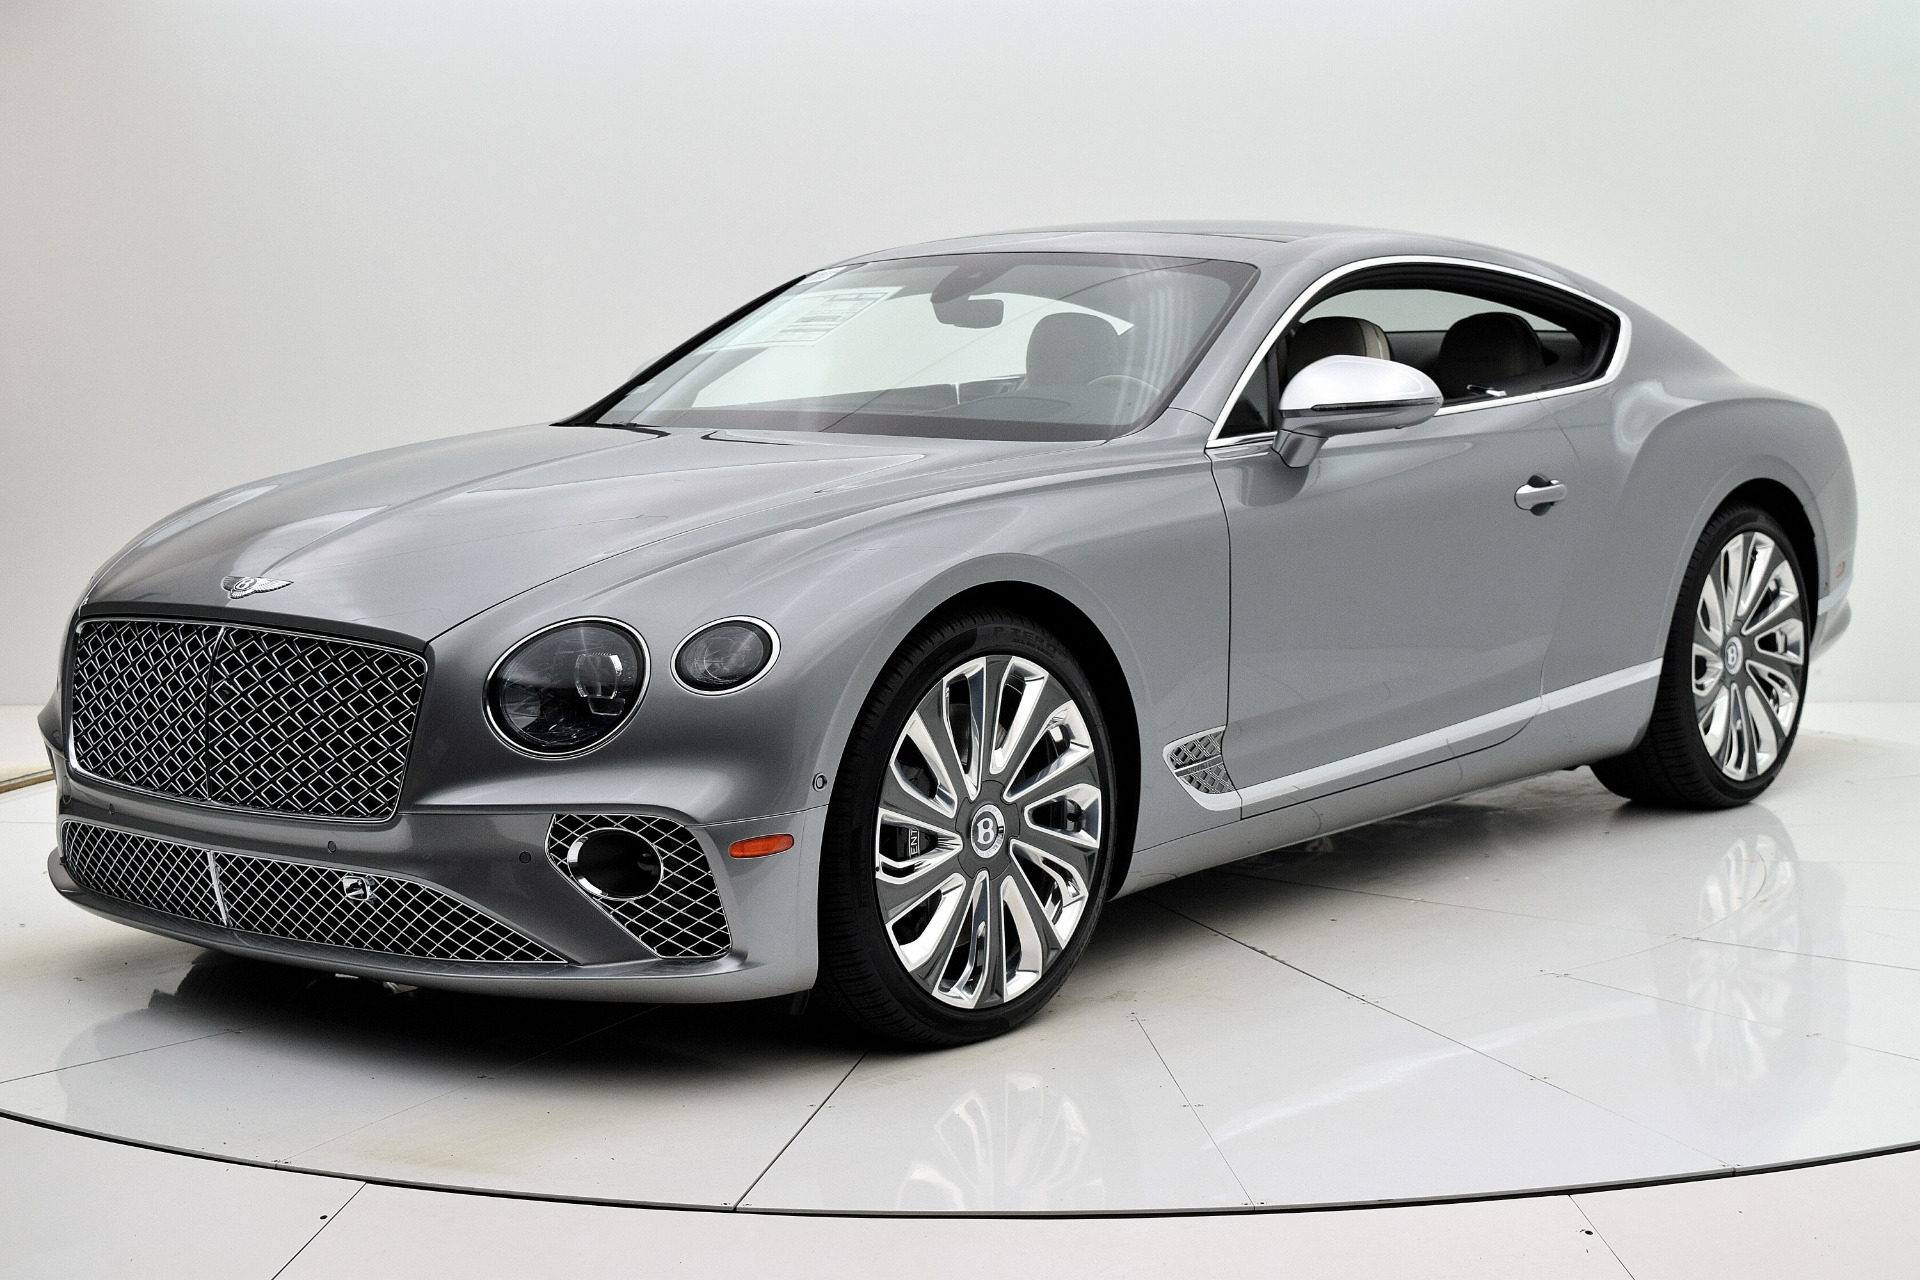 New 2021 Bentley Continental GT V8 Mulliner Coupe for sale Sold at F.C. Kerbeck Lamborghini Palmyra N.J. in Palmyra NJ 08065 2